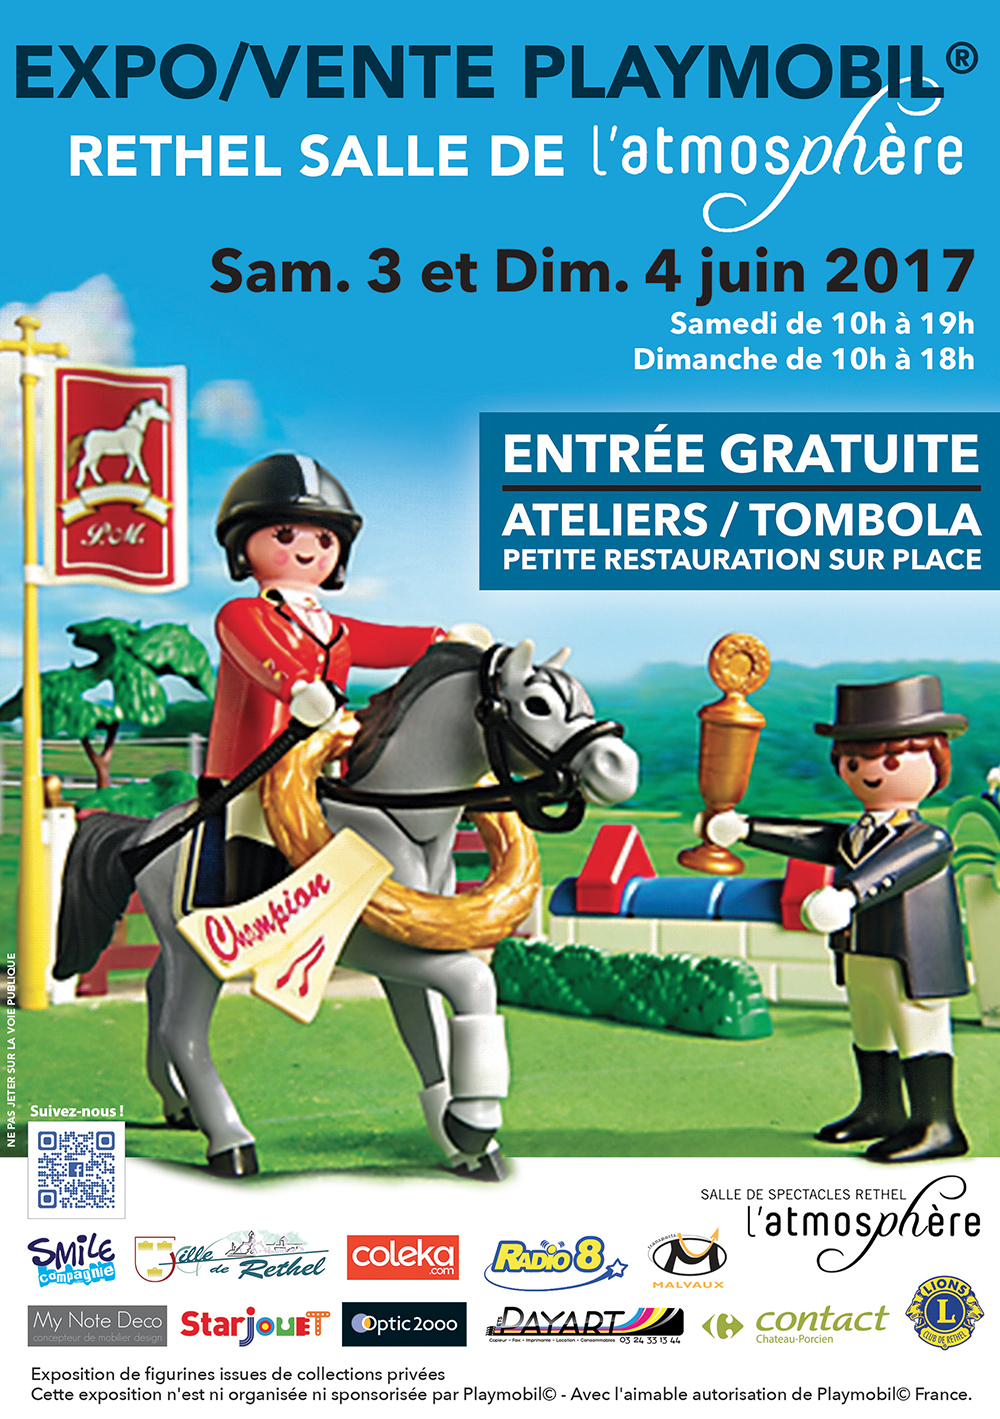 Exposition playmobil rethel smile compagnie